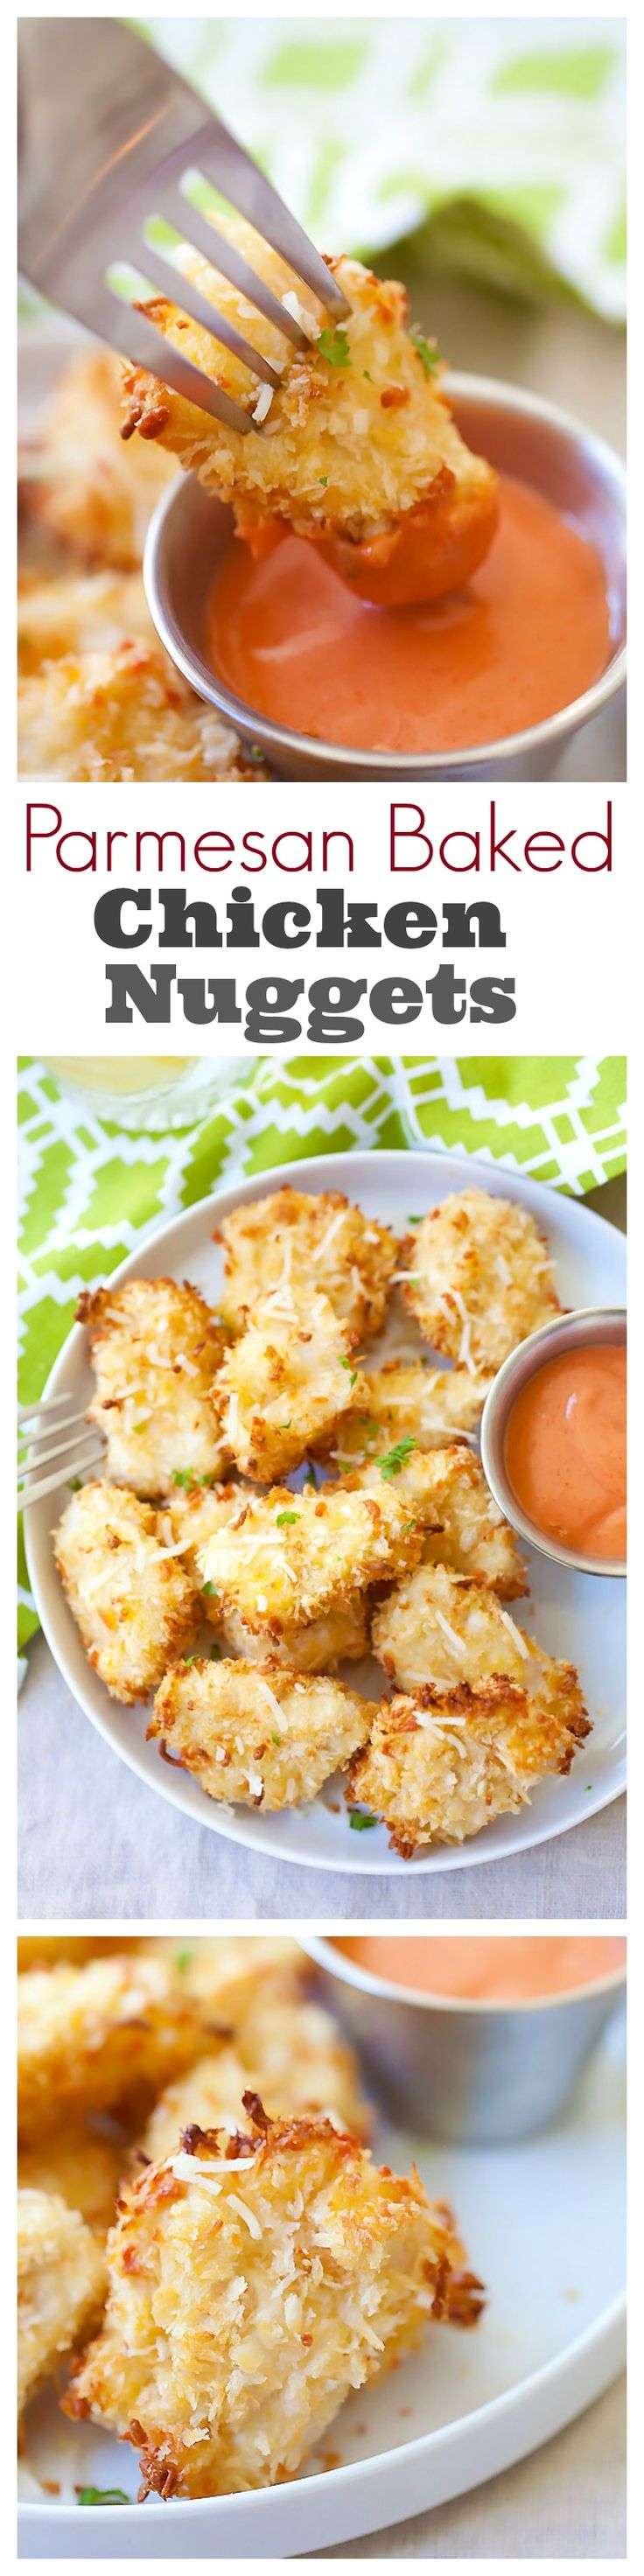 Parmesan Baked Chicken Nuggets - Best nuggets with real chicken & Parmesan, no deep-frying. The easiest baked chicken nuggets recipe ever   rasamalaysia.com